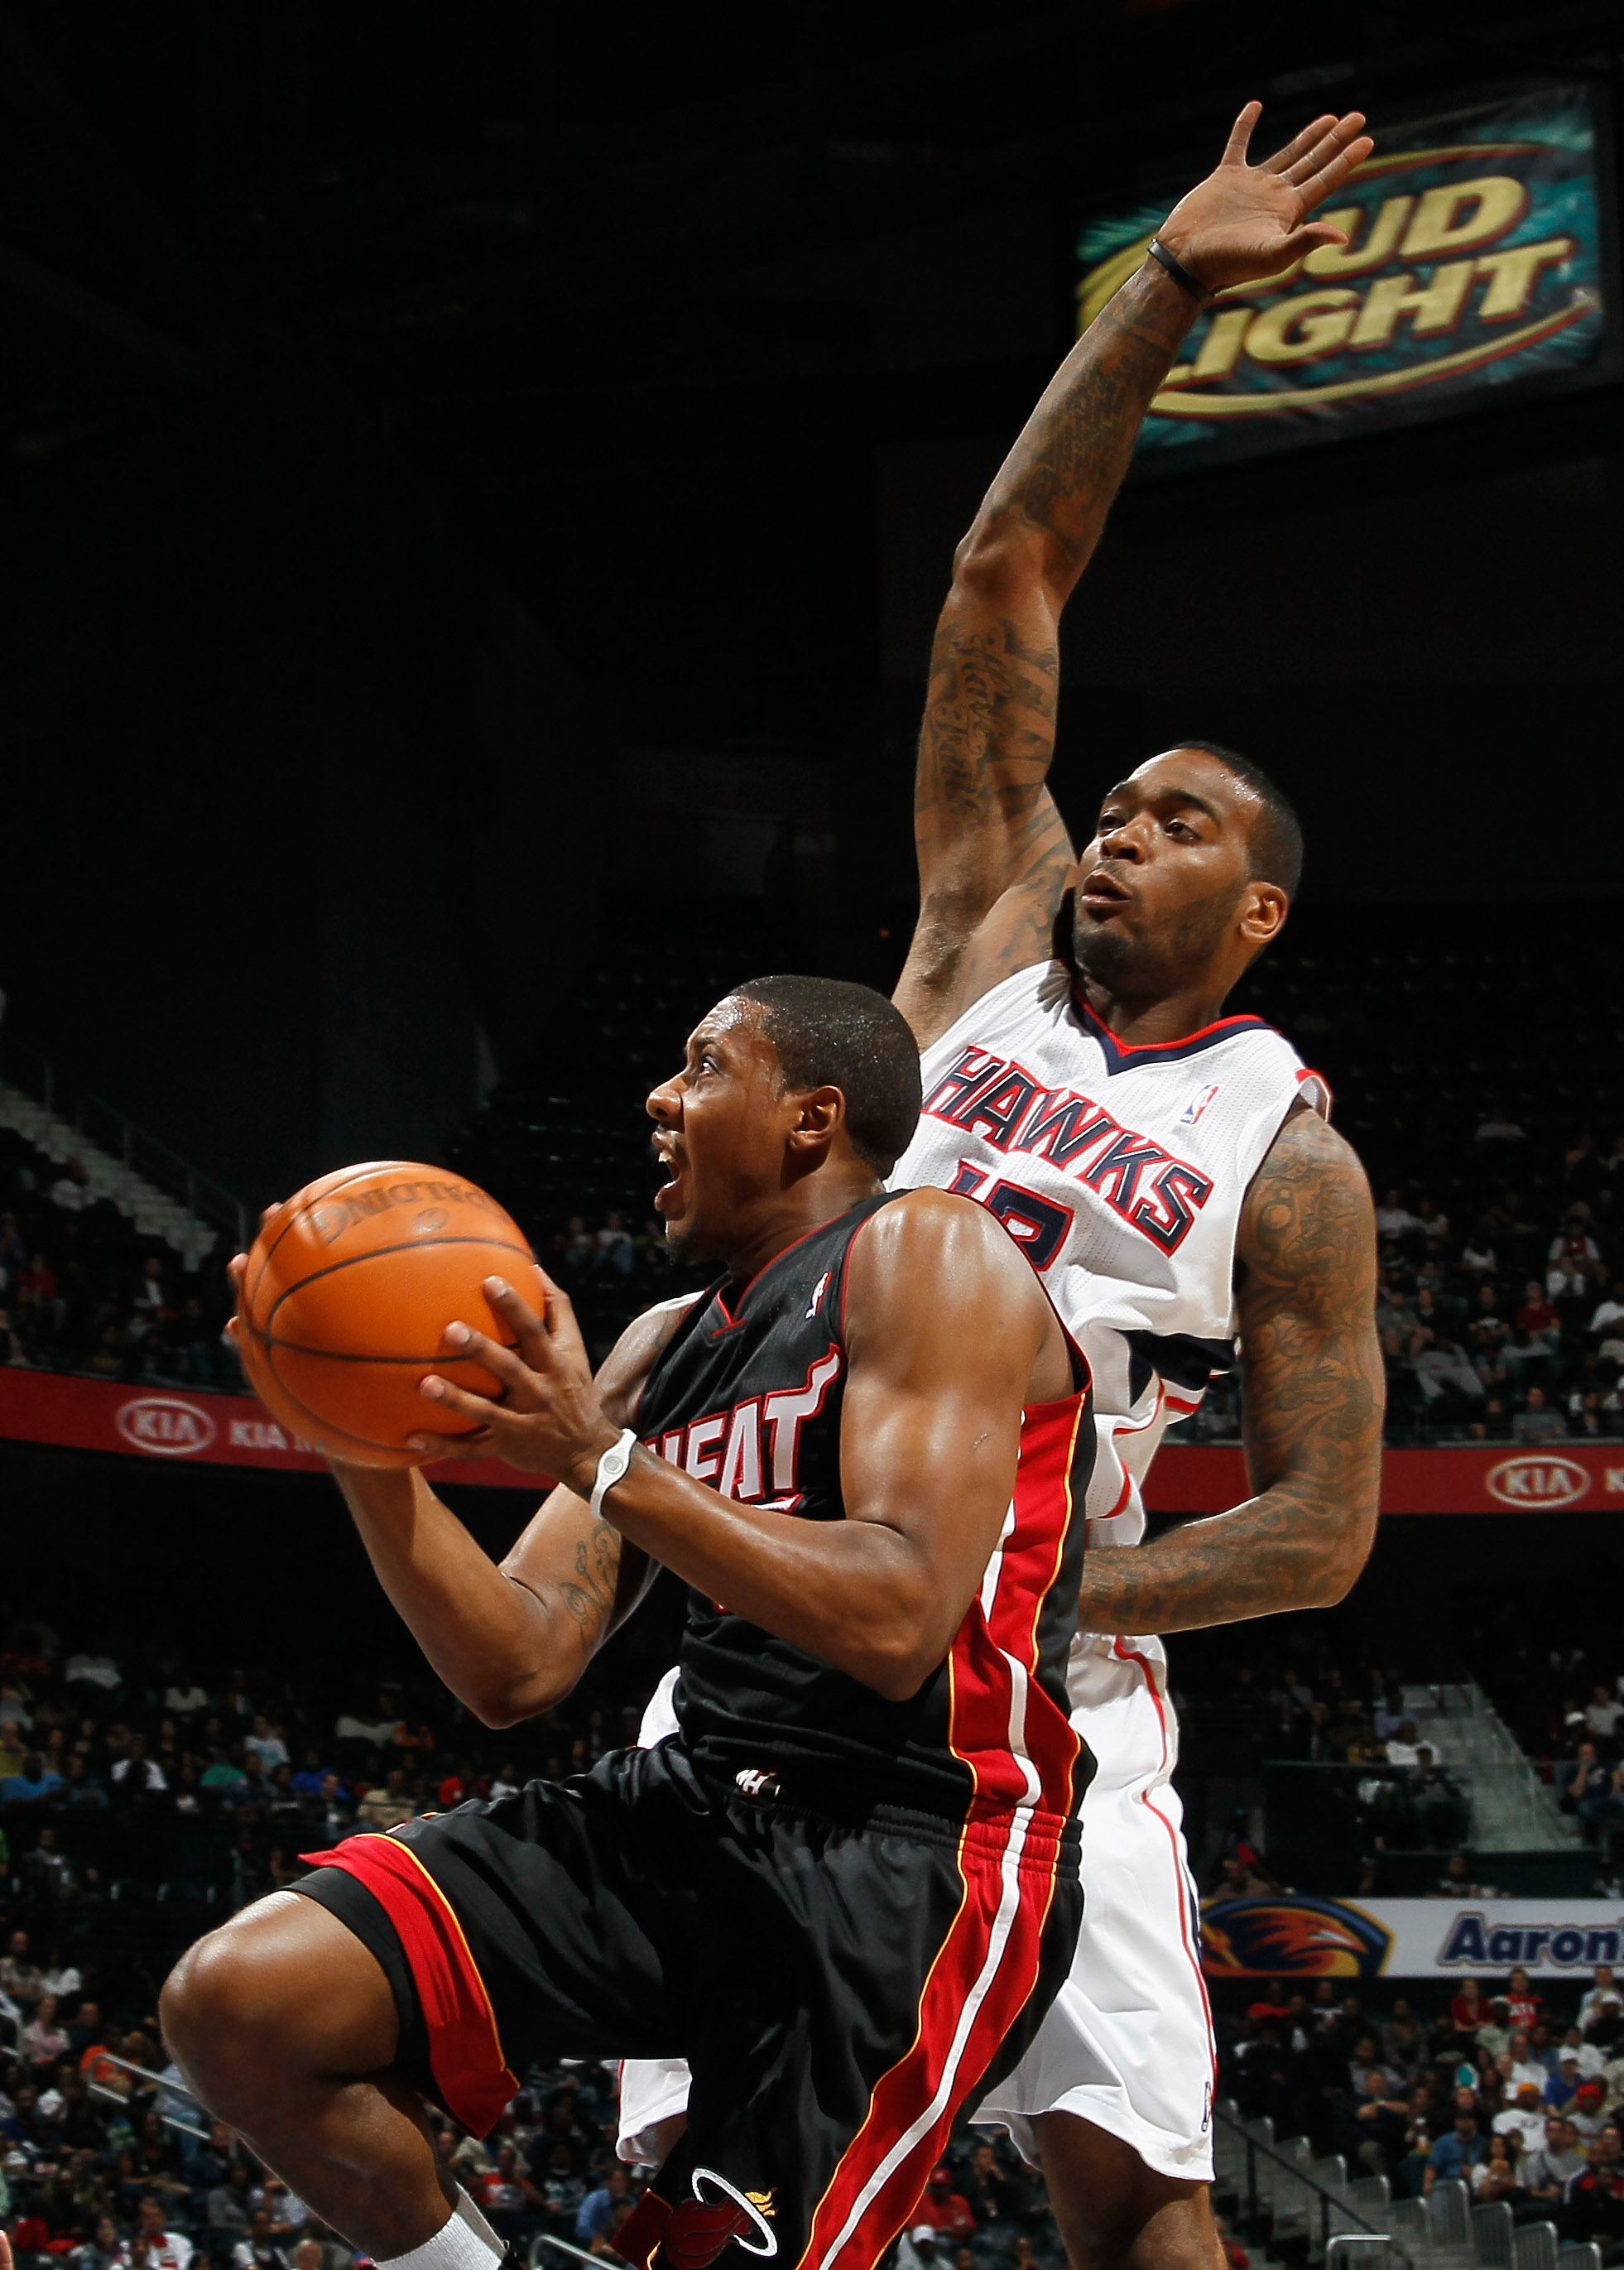 ATLANTA - OCTOBER 21:  Mario Chalmers #15 of the Miami Heat drives the basket against Josh Powell #12 of the Atlanta Hawks at Philips Arena on October 21, 2010 in Atlanta, Georgia.  (Photo by Kevin C. Cox/Getty Images)